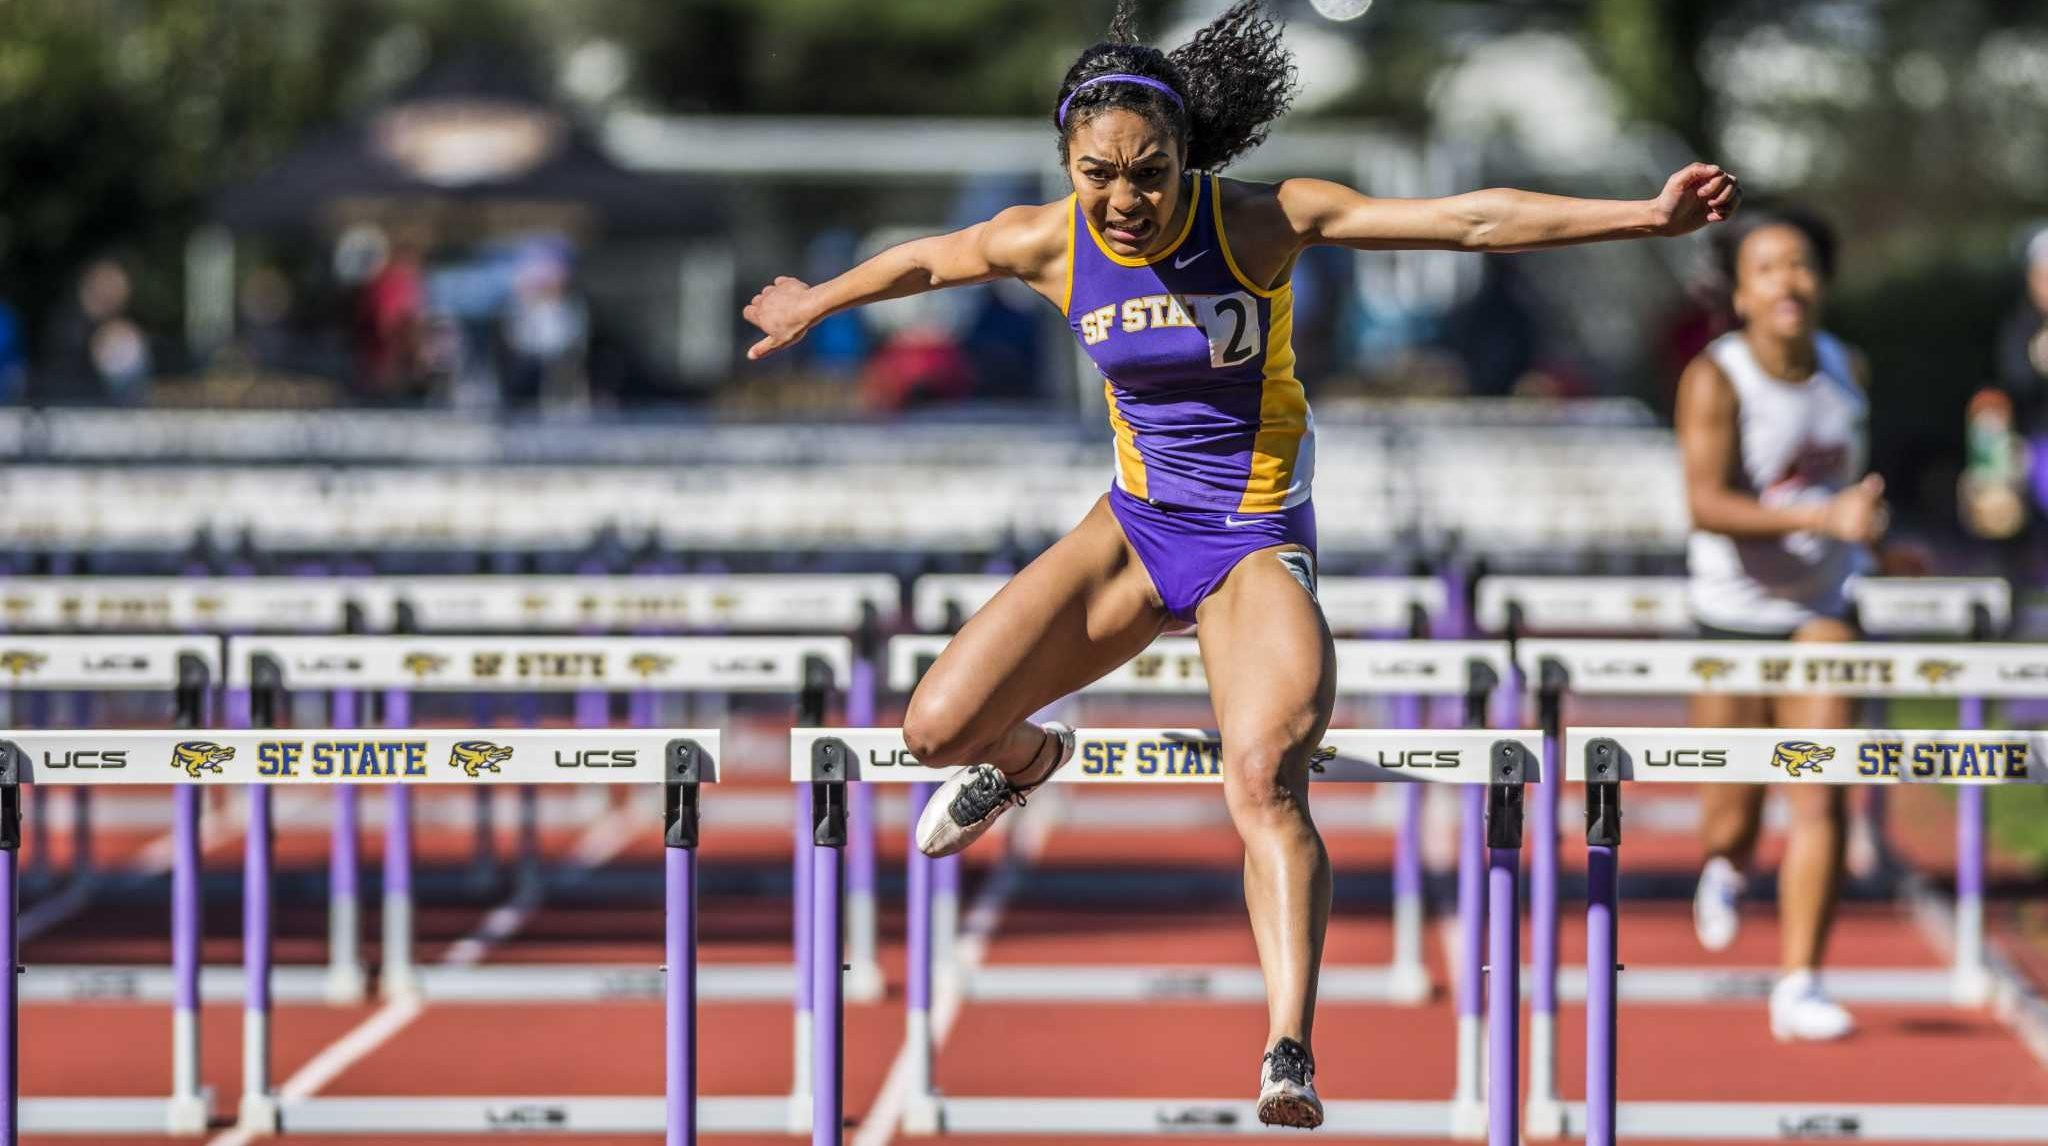 SF State Gators' freshman Jayden Dalton takes third place of 100m hurdles run with a time of 15.78 during the track and field Johnny Mathis Invitational at the Cox Stadium in San Francisco on Saturday, Feb. 25, 2017. This is Dalton's debut running for the Gators (Lee Kin/Xpress).